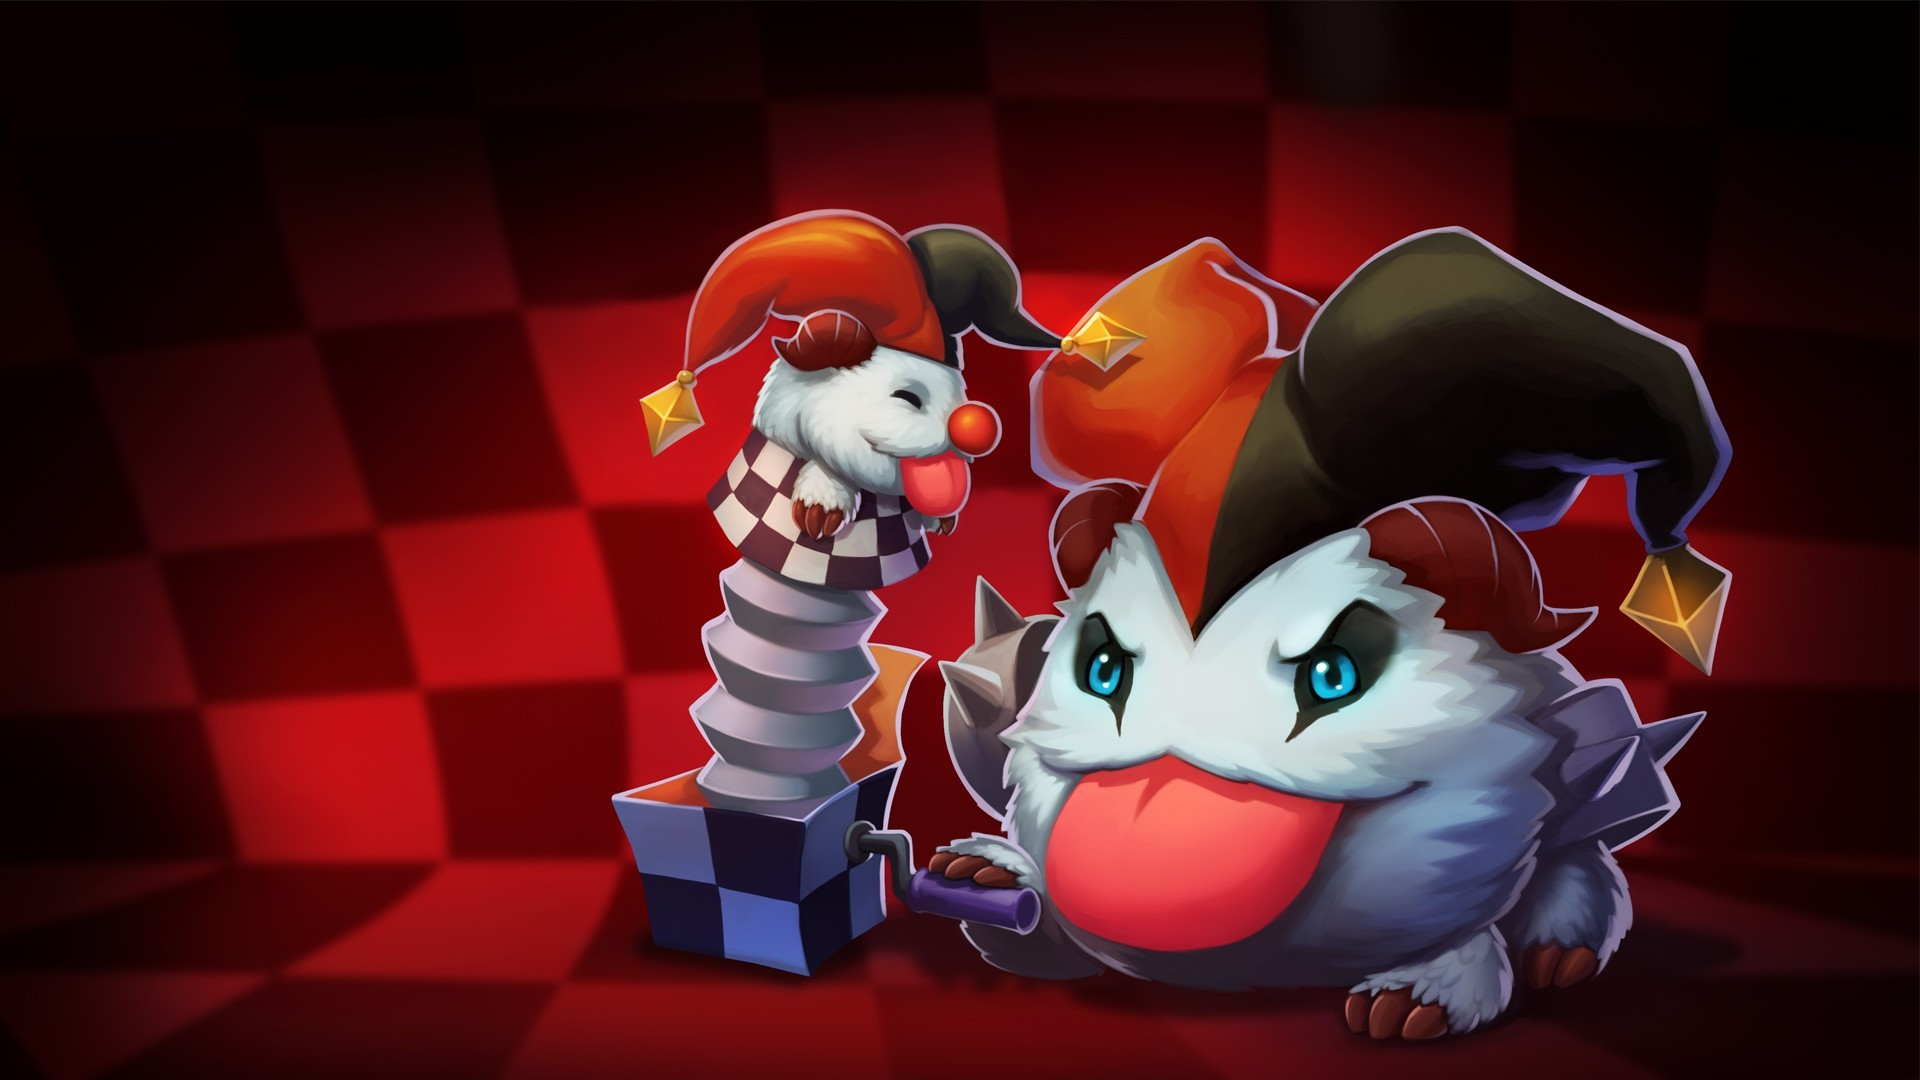 League Of Legends Poro Shaco Wallpapers Hd Desktop